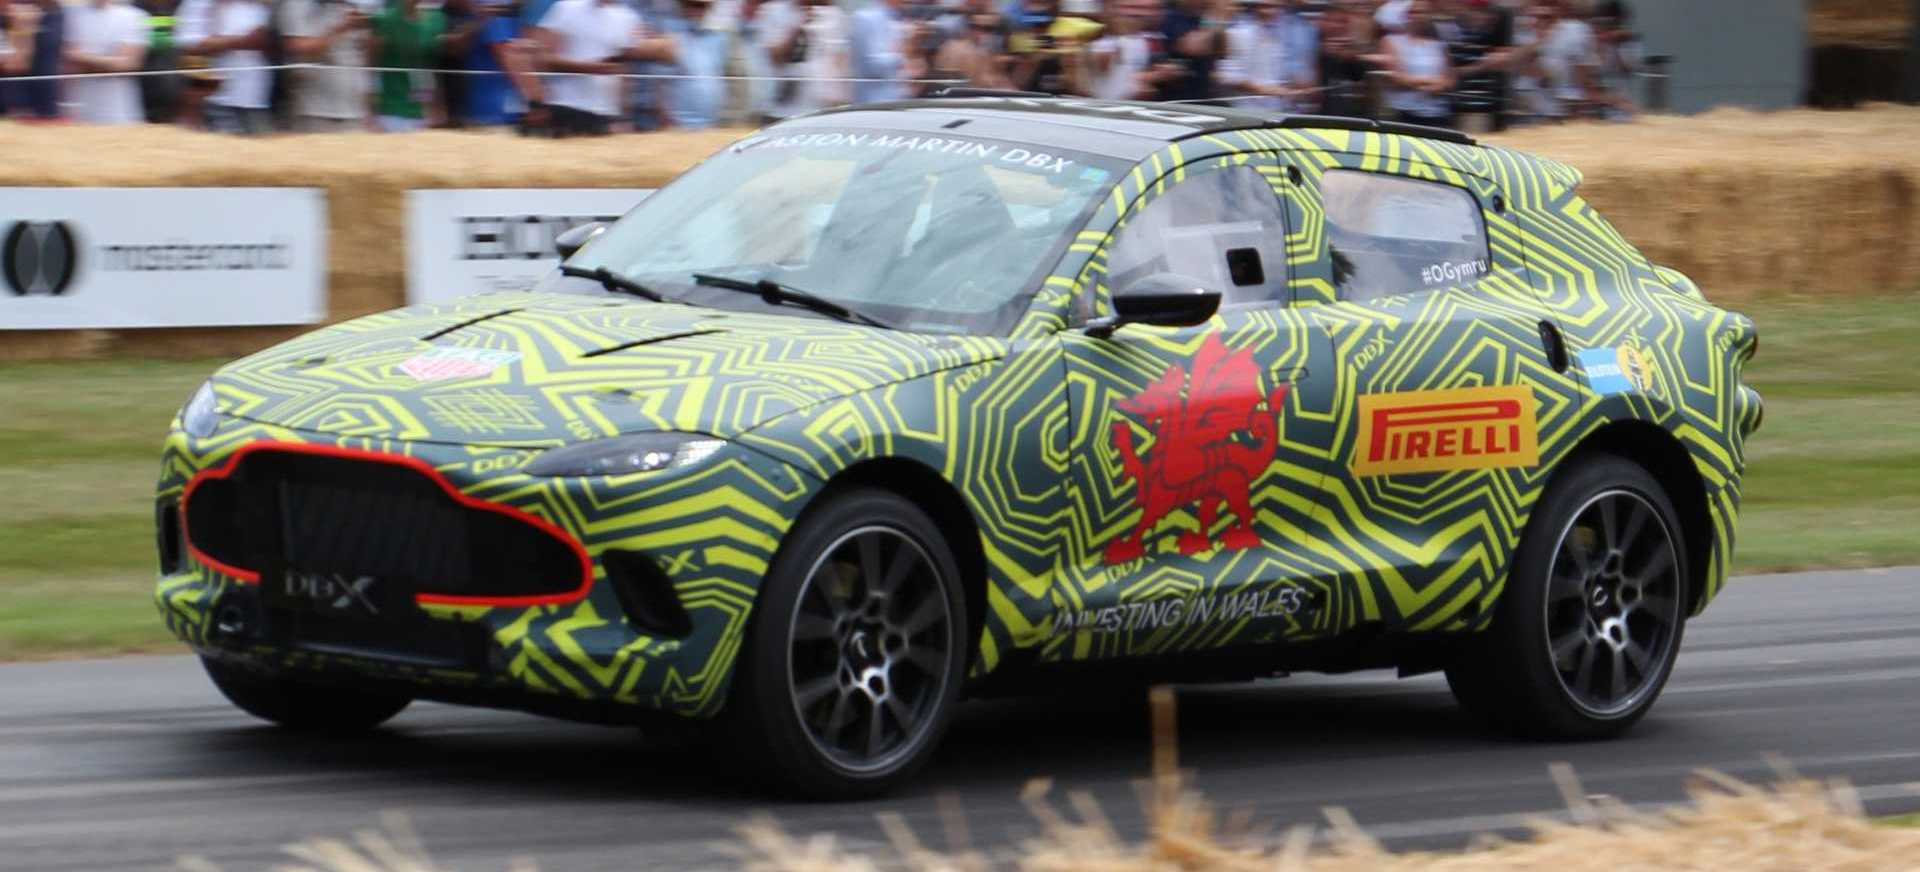 Aston Martin Thinks DBX SUV Will Be Brand's Most Important Car Ever